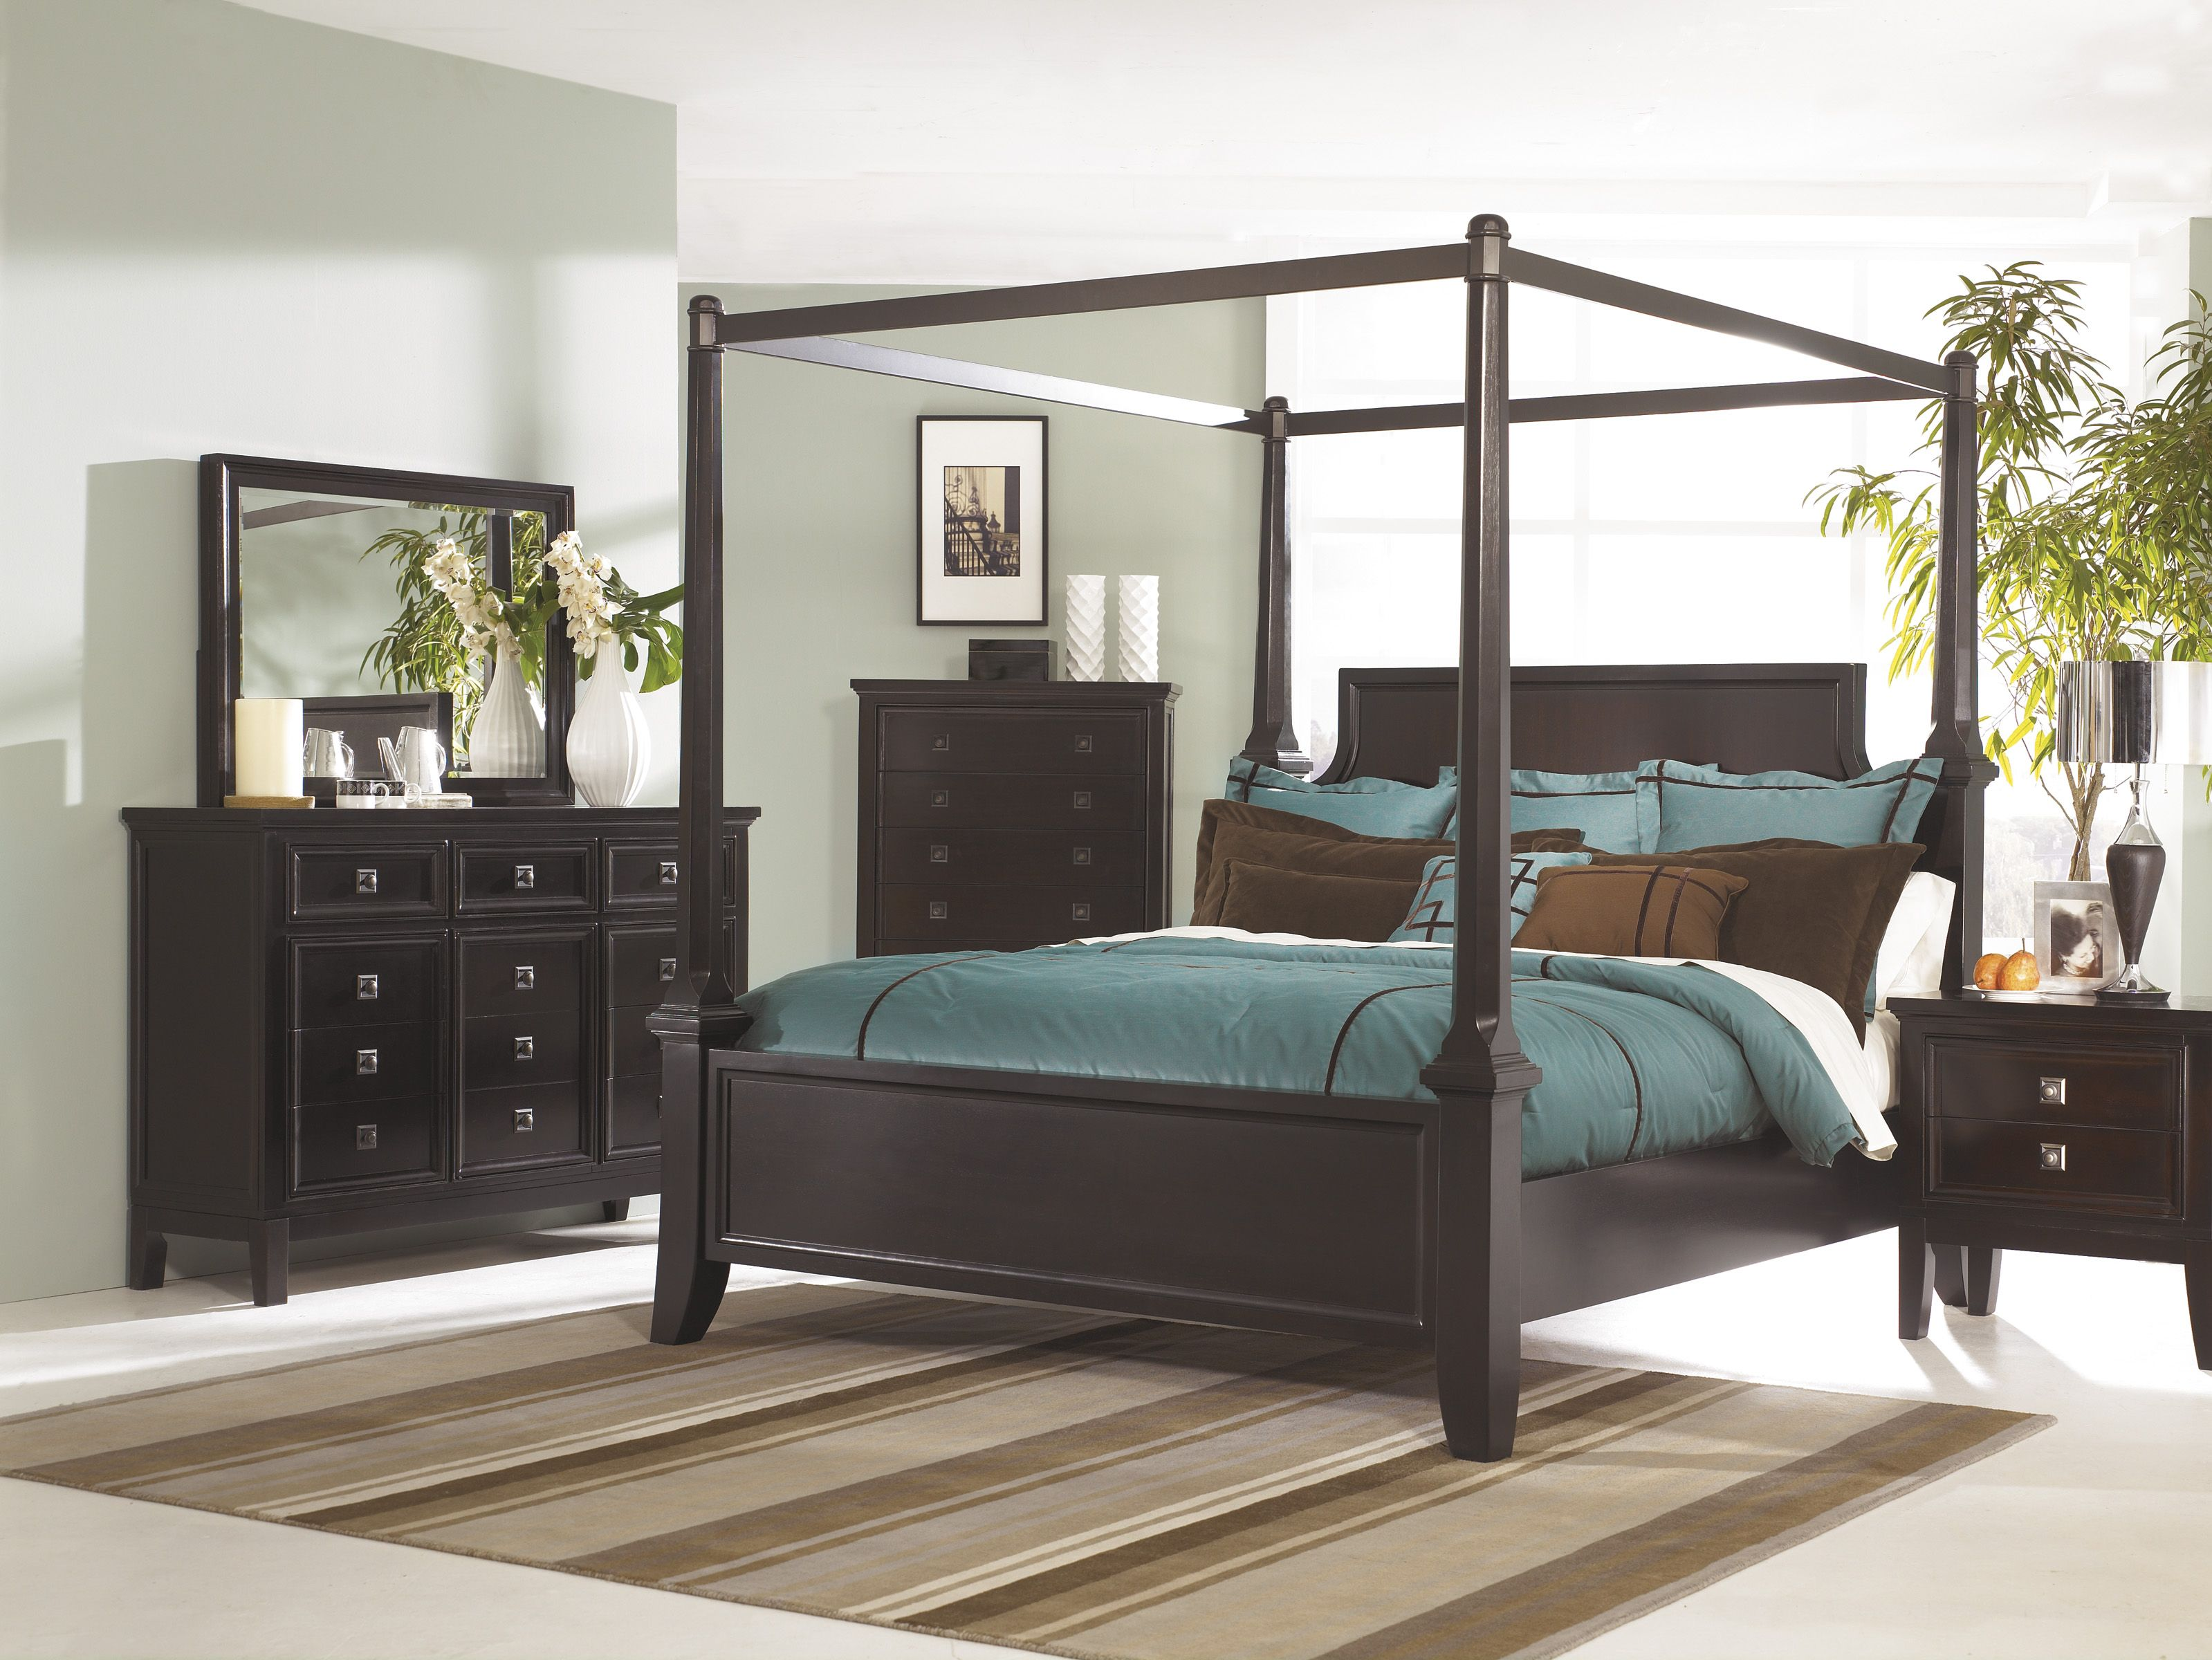 Ashley Furniture B551 Bedroom Set With Images Canopy Bedroom